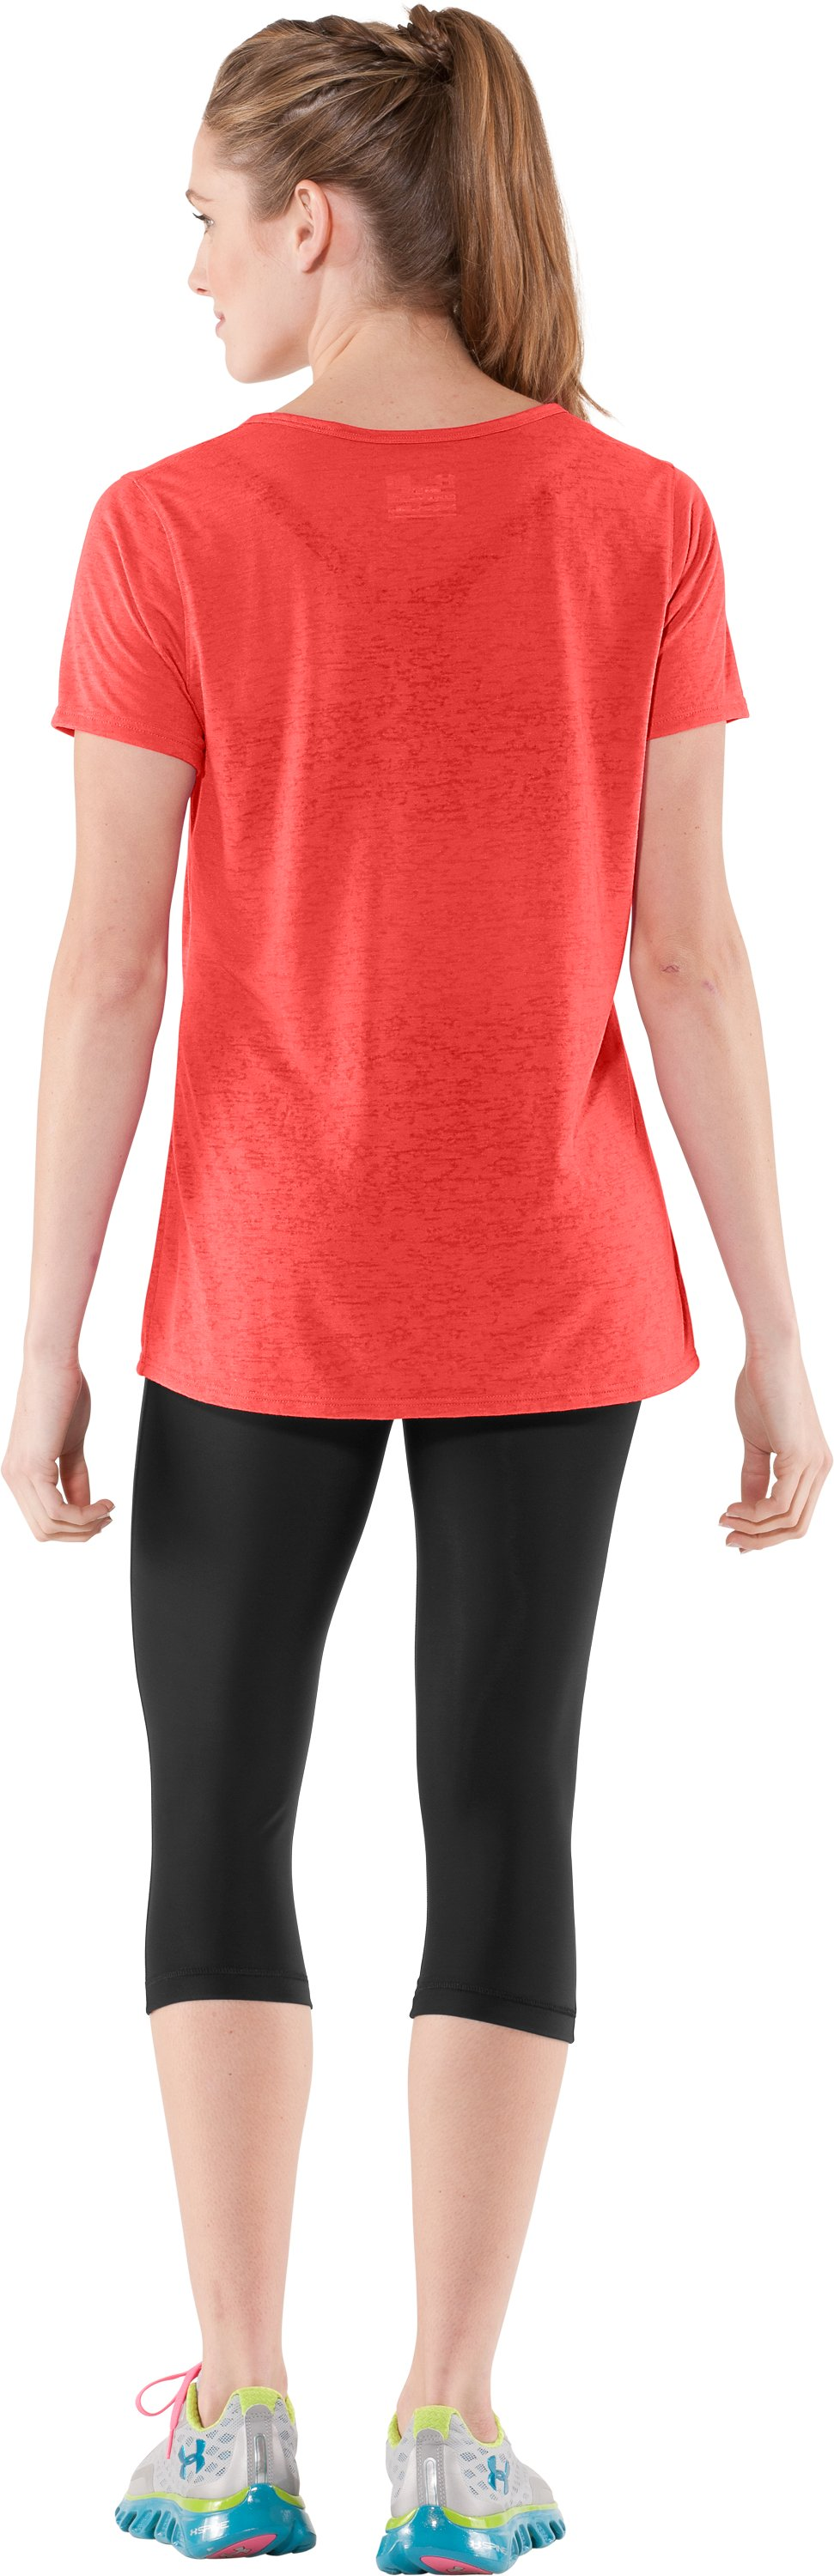 Women's Achieve Burnout T-Shirt, Fire, Back